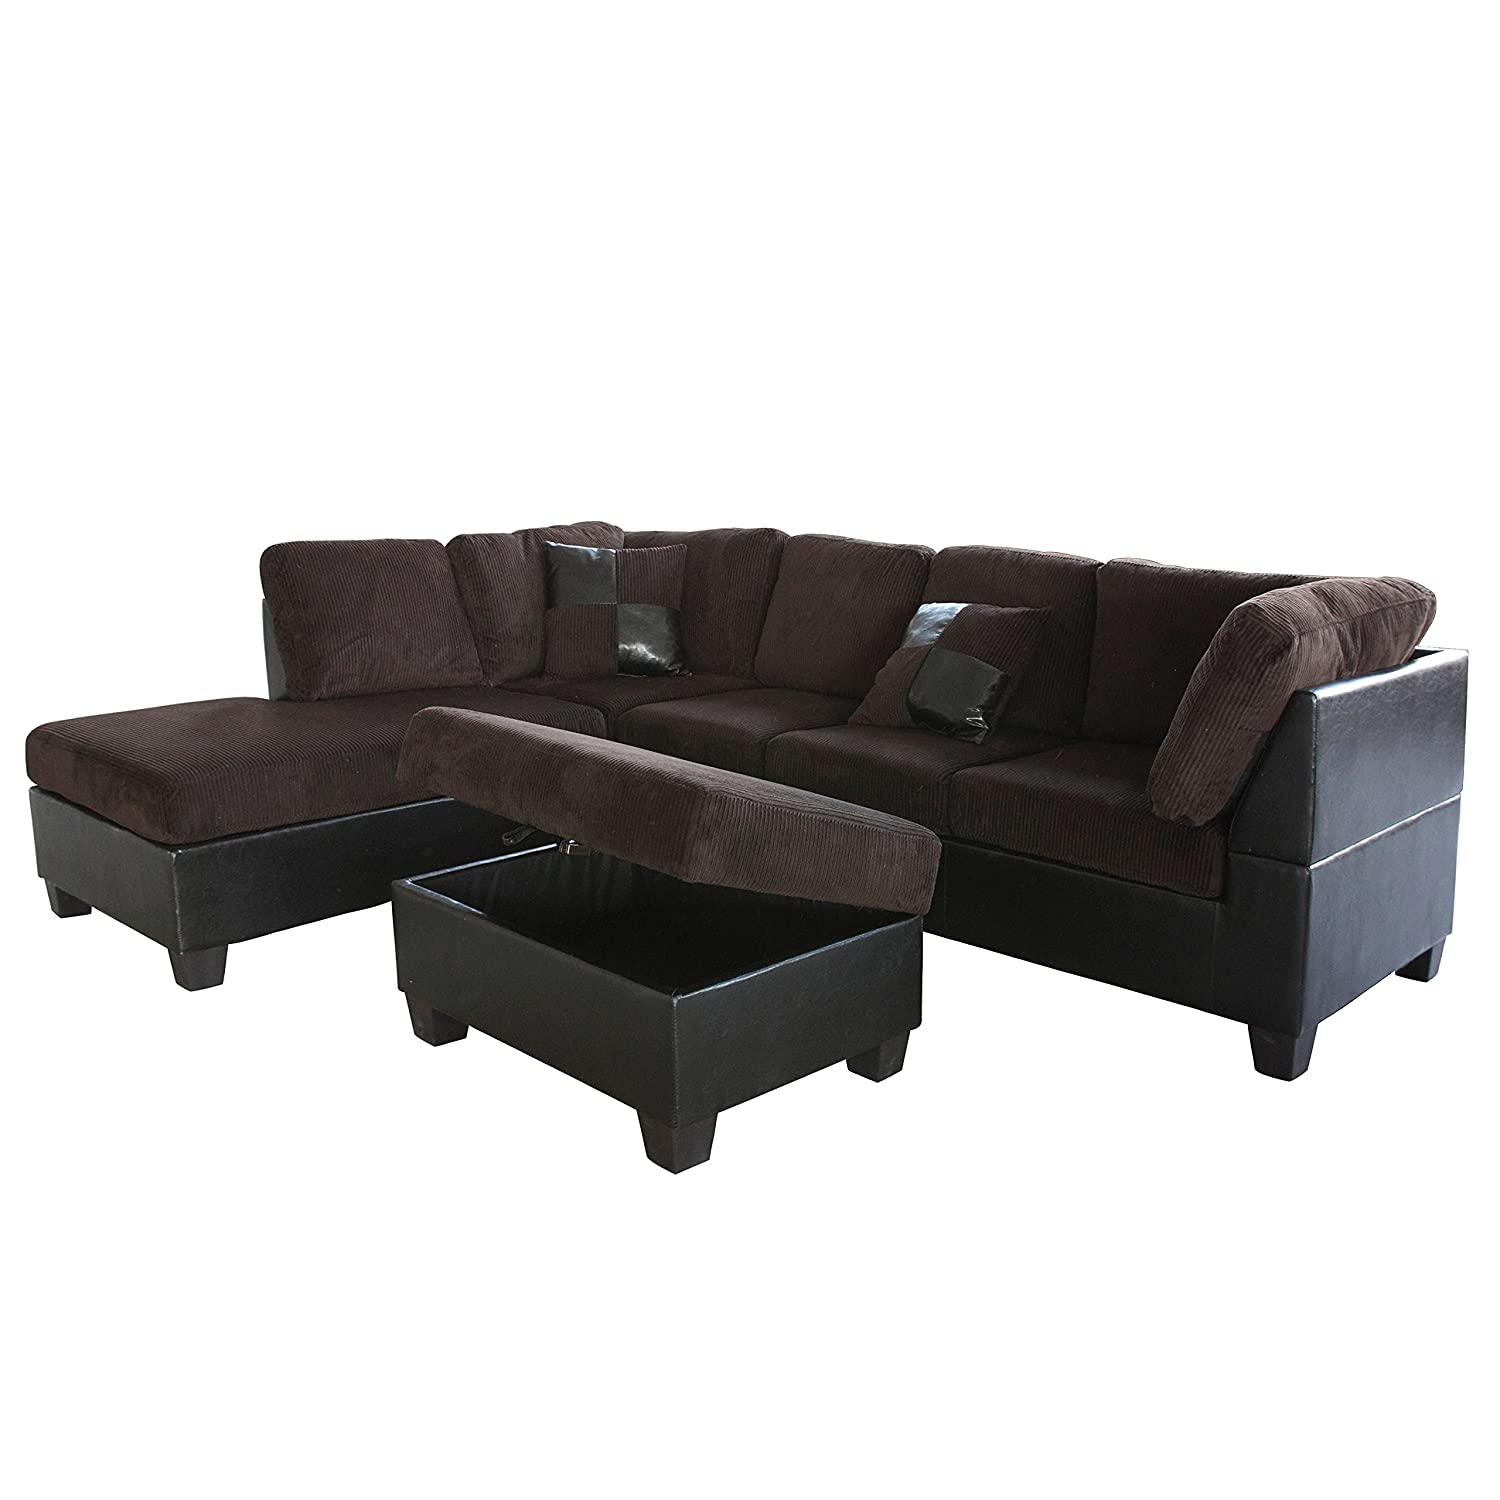 Amazon.com: US Pride Sierra Corduroy Sectional Sofa with Storage ...